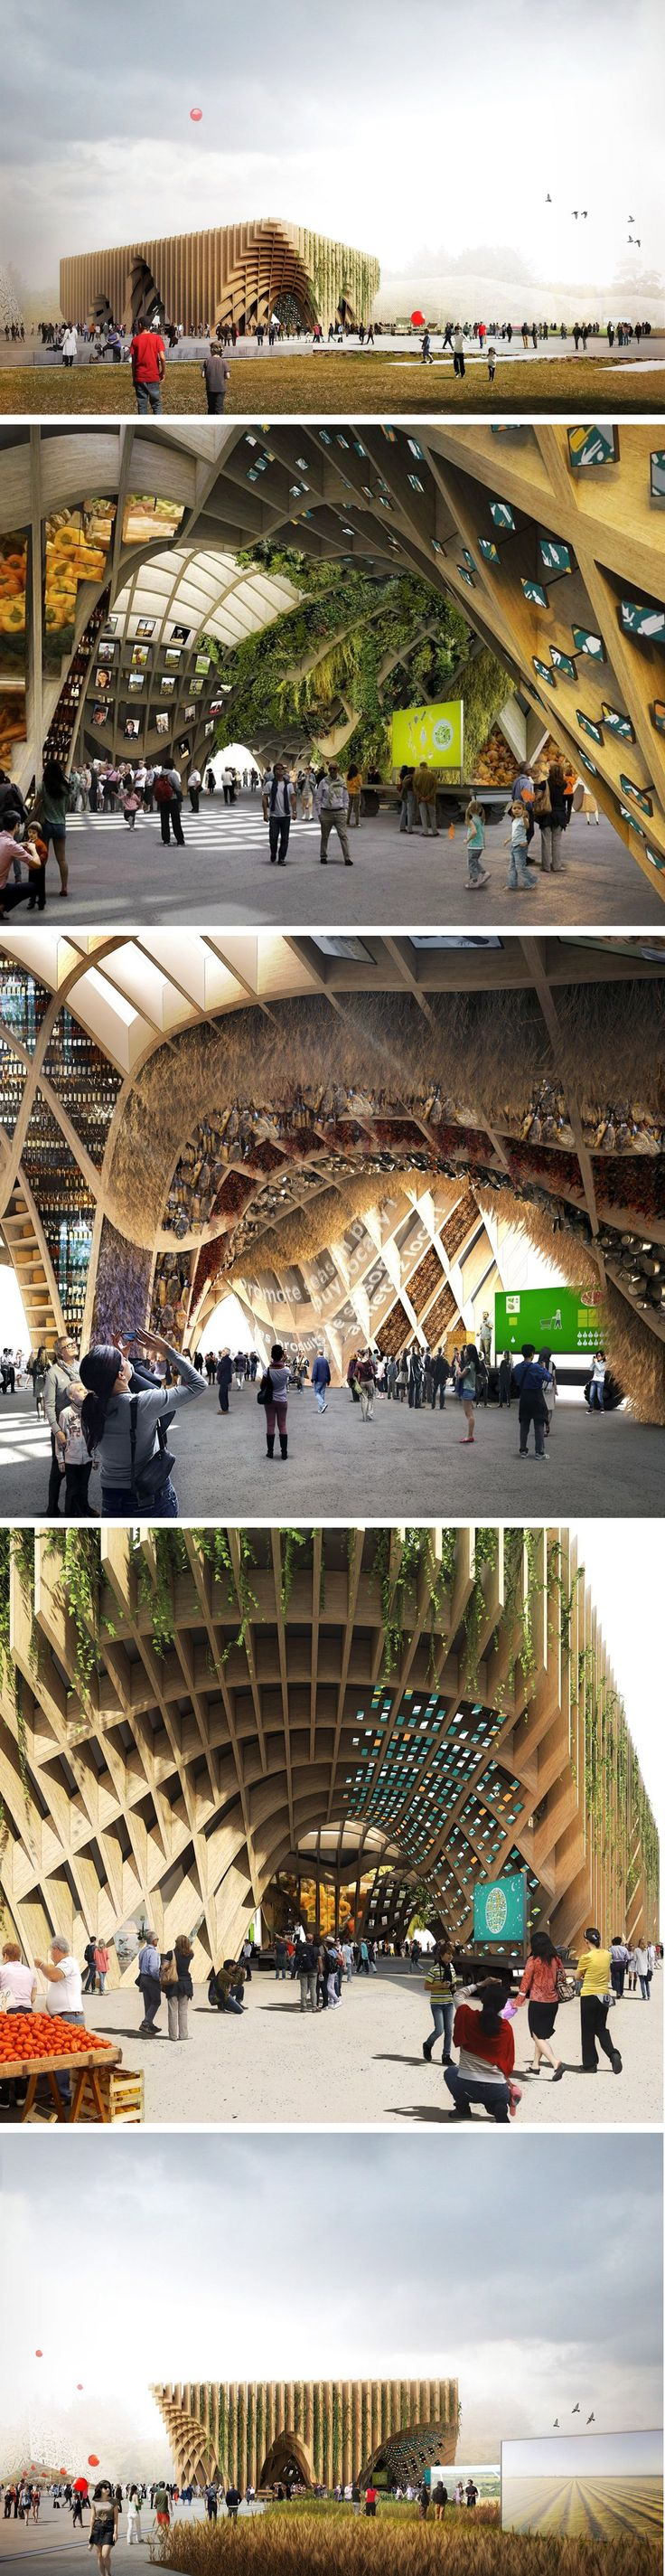 France Pavilion at @Expo2015Milano  by X-TU architects #architecture #pavilion #expo2015